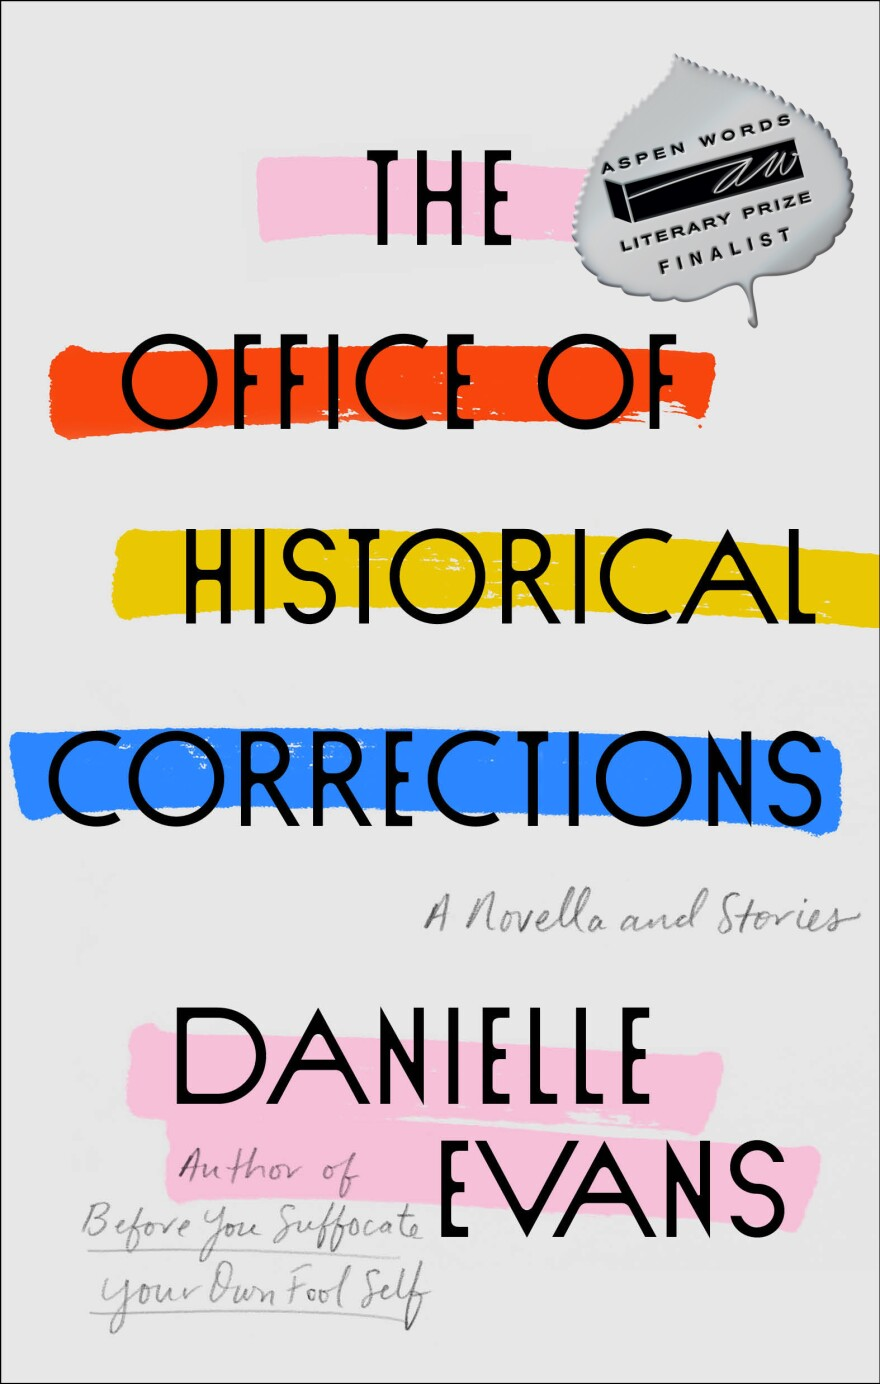 The Office of Historical Corrections, by Danielle Evans